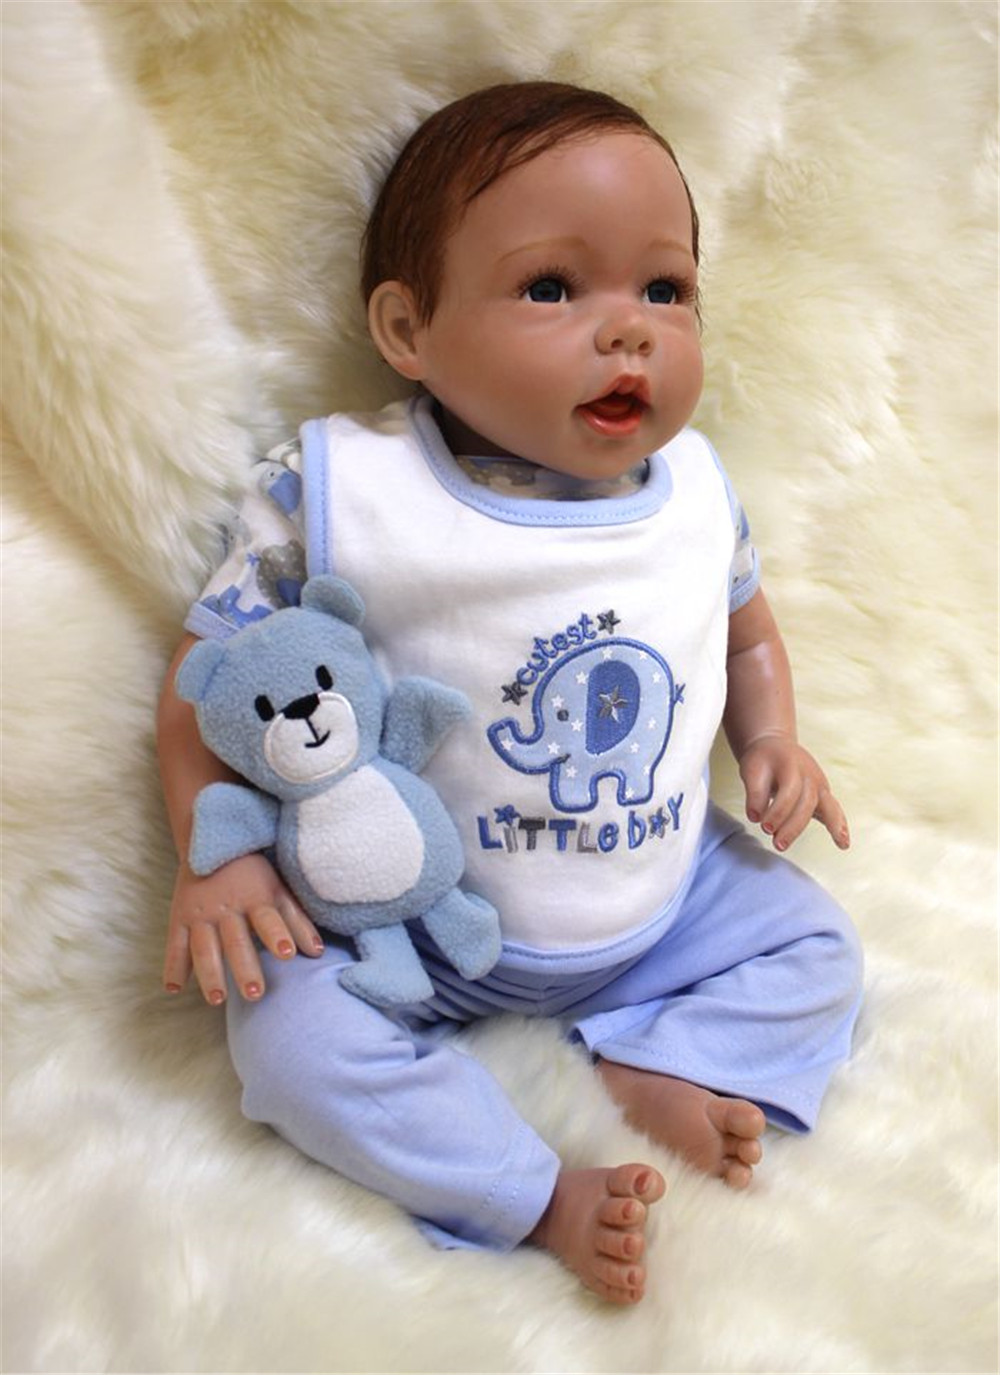 NPKCOLLECTION20 50cm Silicone Reborn Baby Doll kids Playmate Gift For Girls Bebe Alive Soft Toys For Bouquets Doll Bebe Rebor